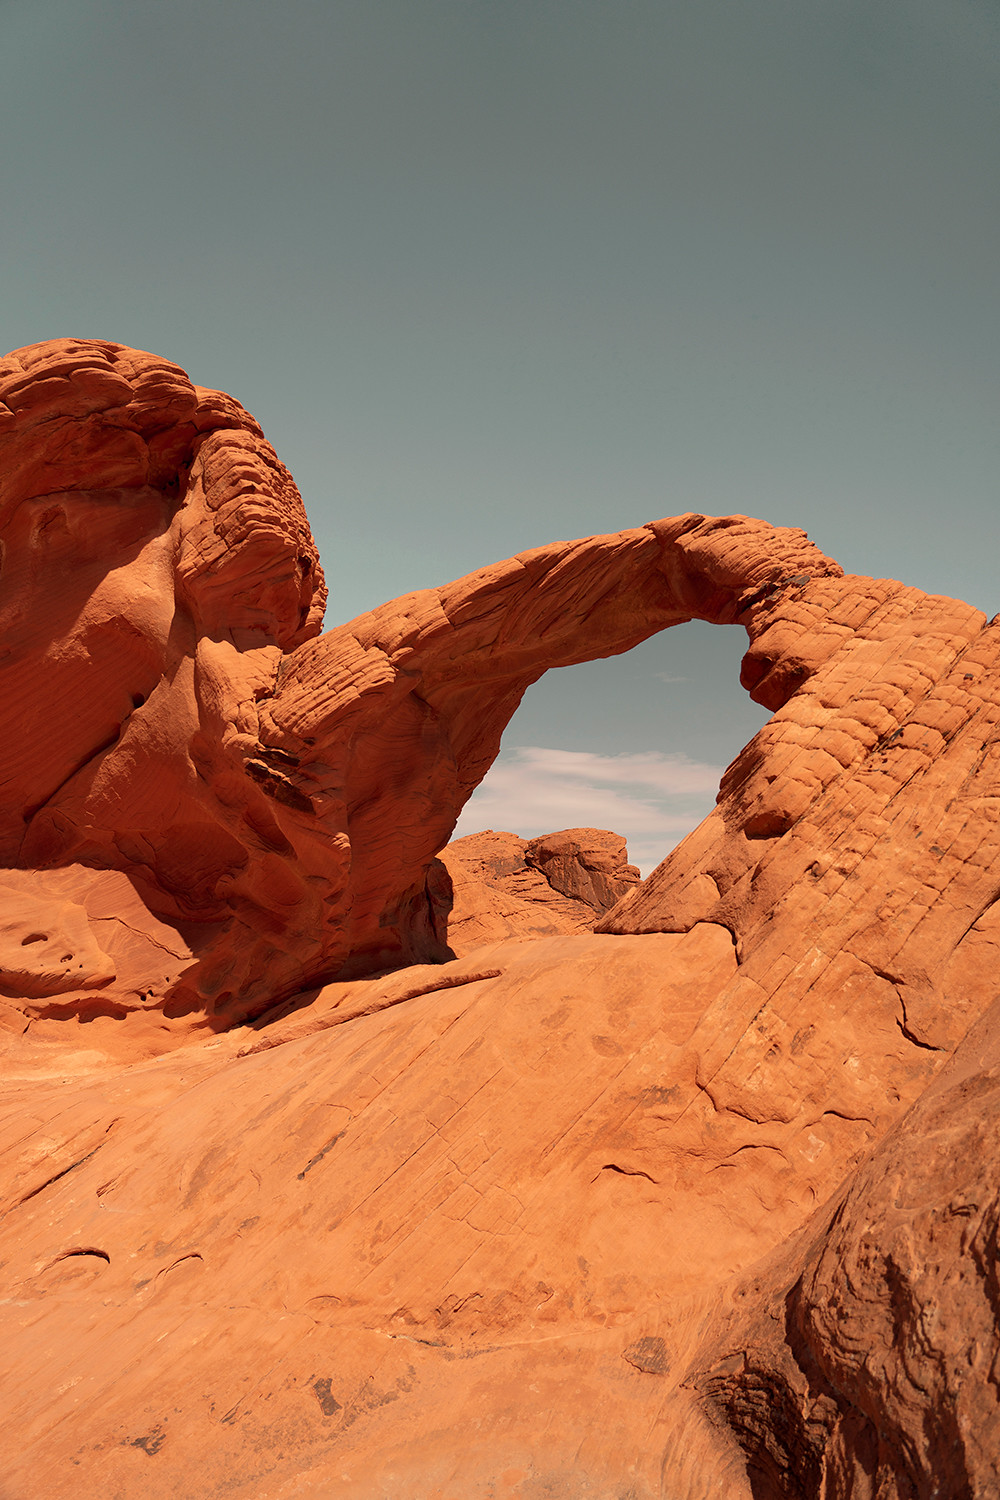 04valleyoffire-archrock-vegas-nevada-travel-landscape-photography